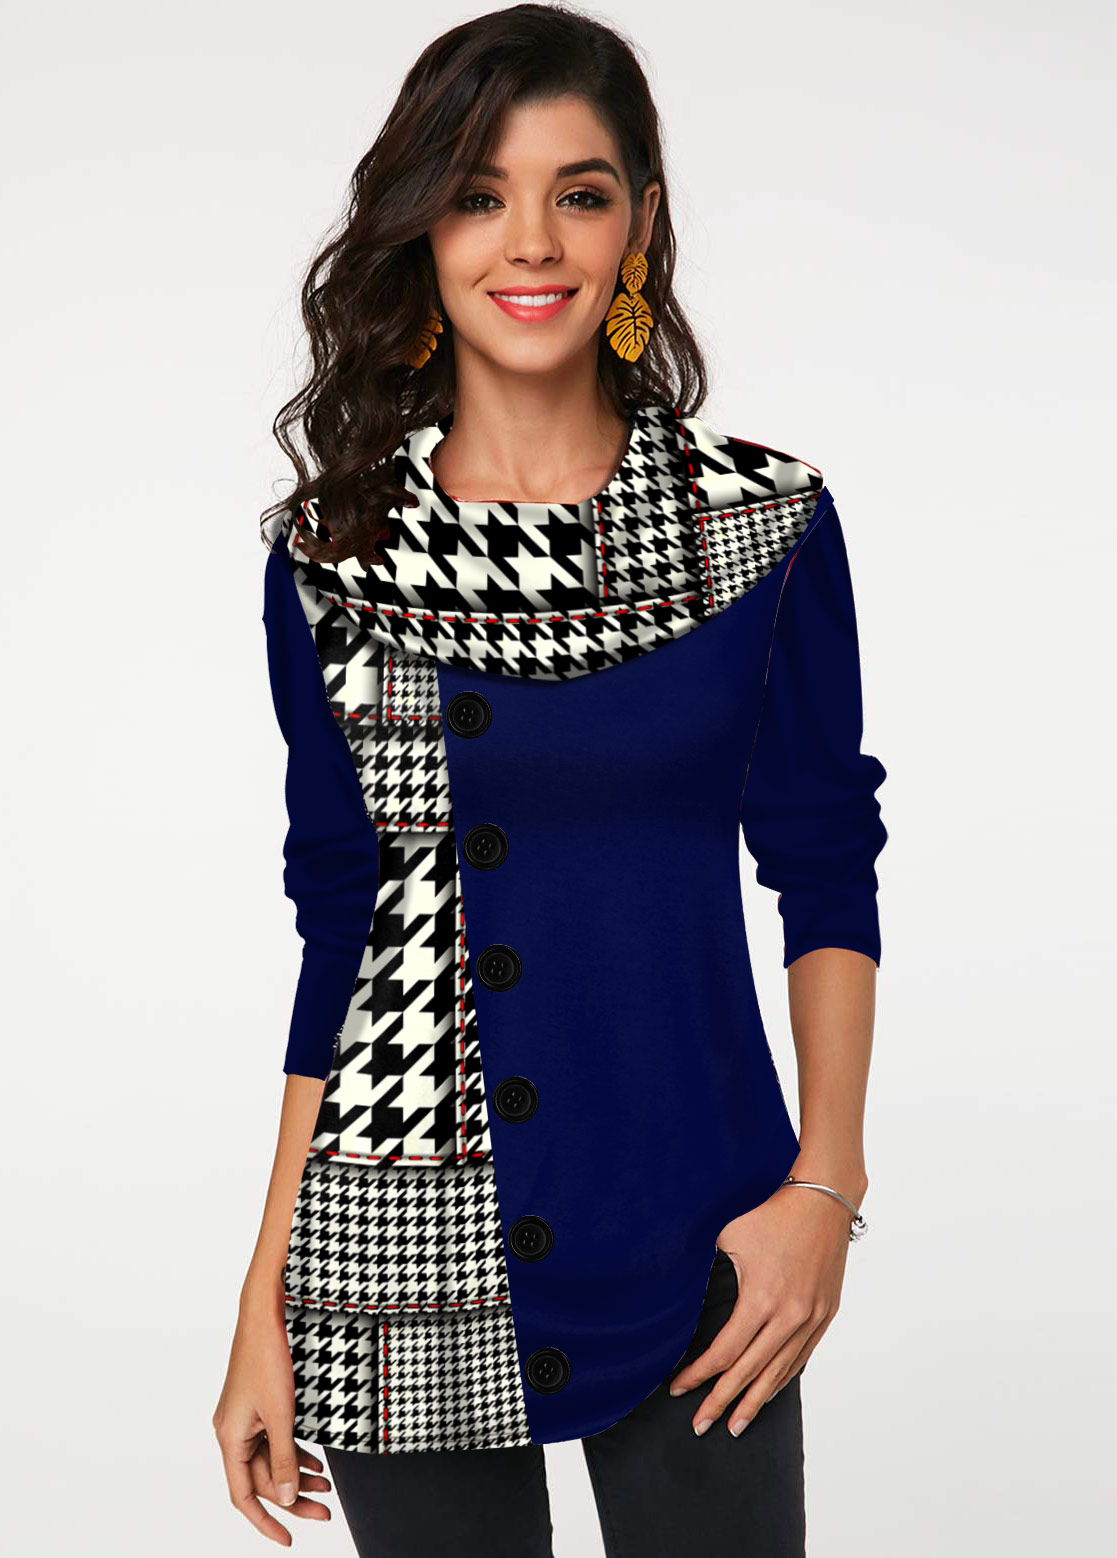 ROTITA Houndstooth Print Decorative Button Tunic Top